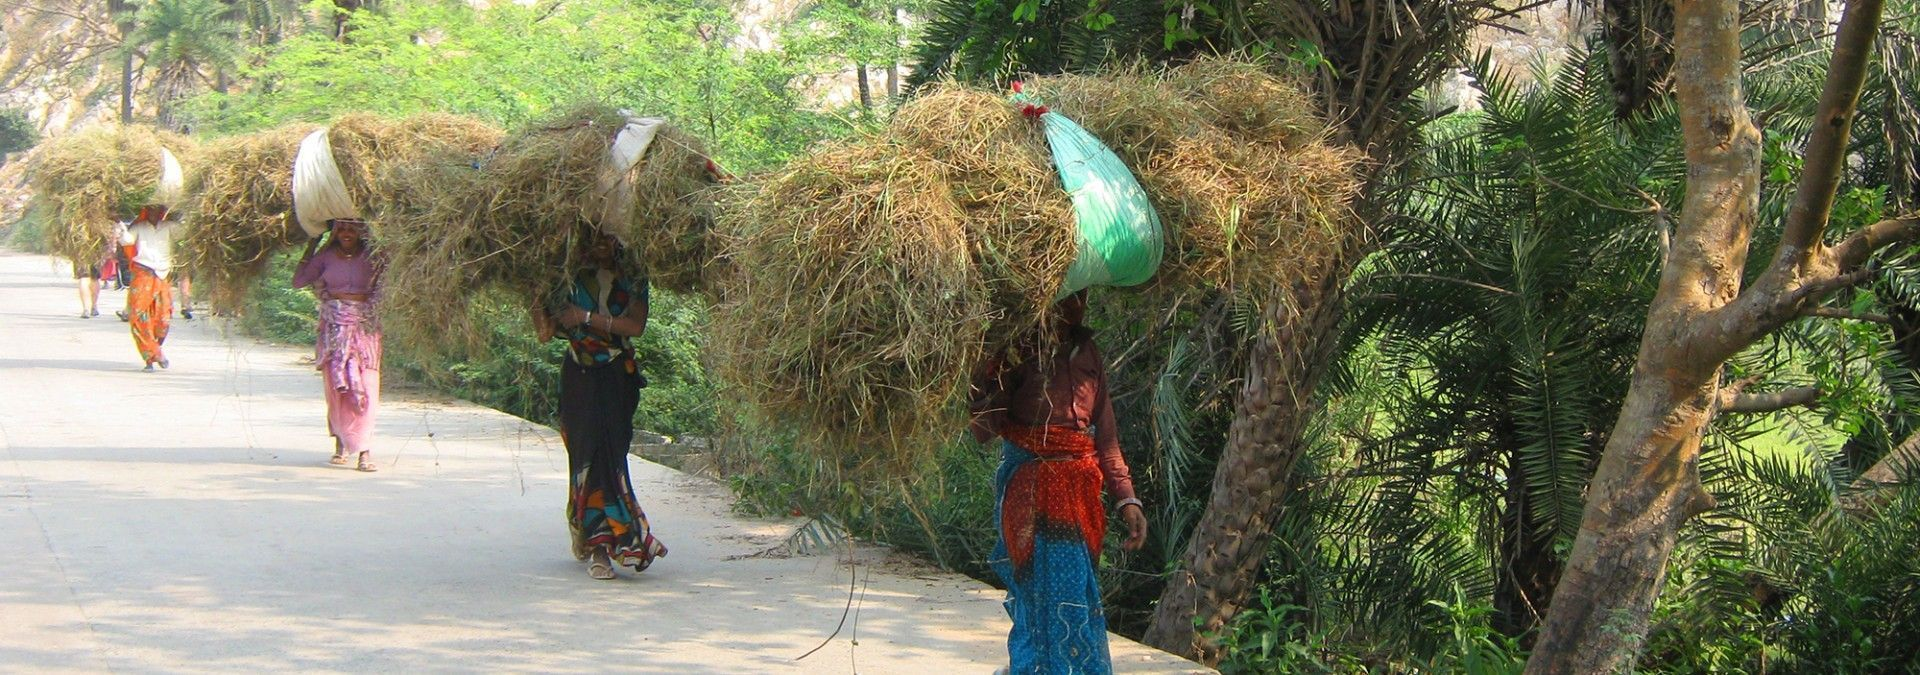 Ladies_of_India_carrying_grasses.jpg